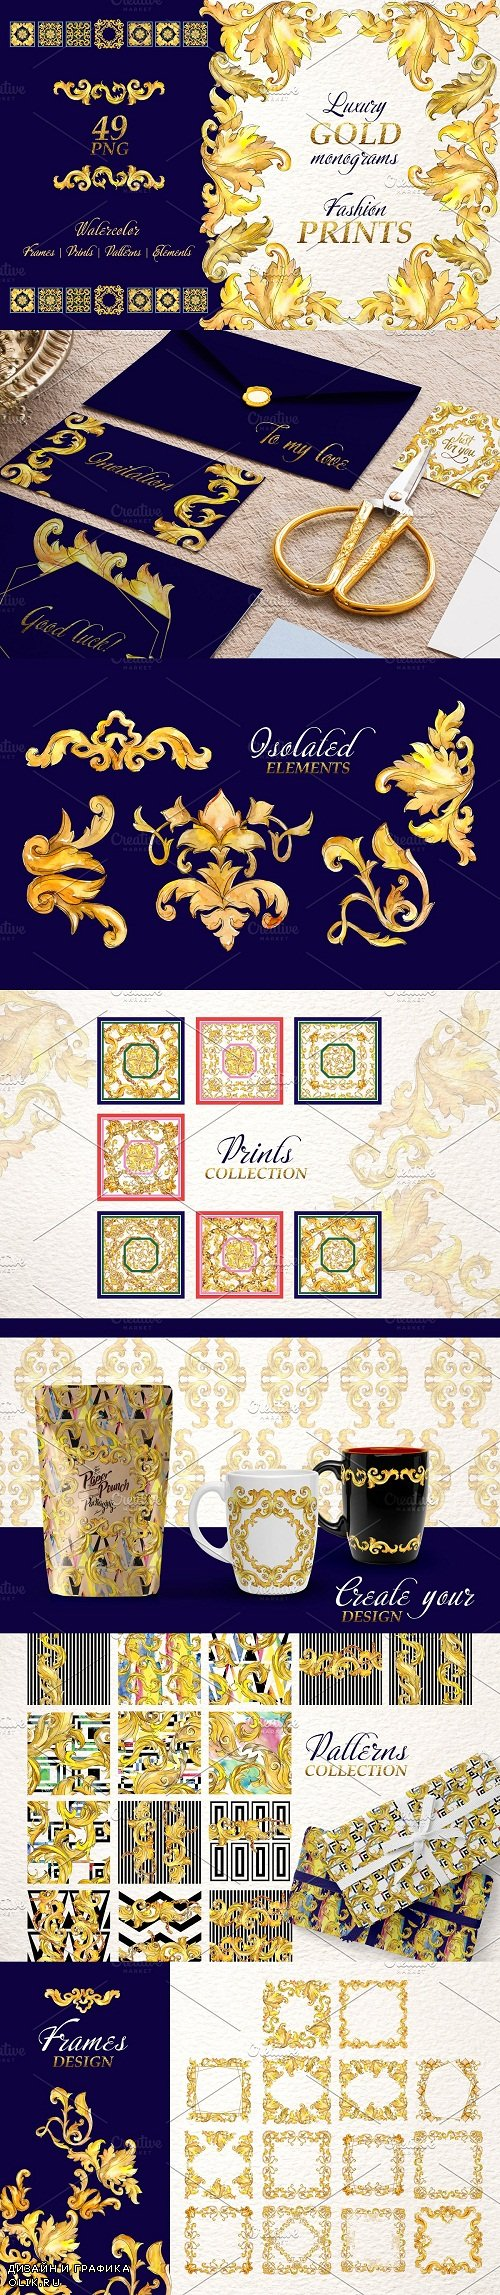 Luxury gold monograms Watercolor png - 3554086